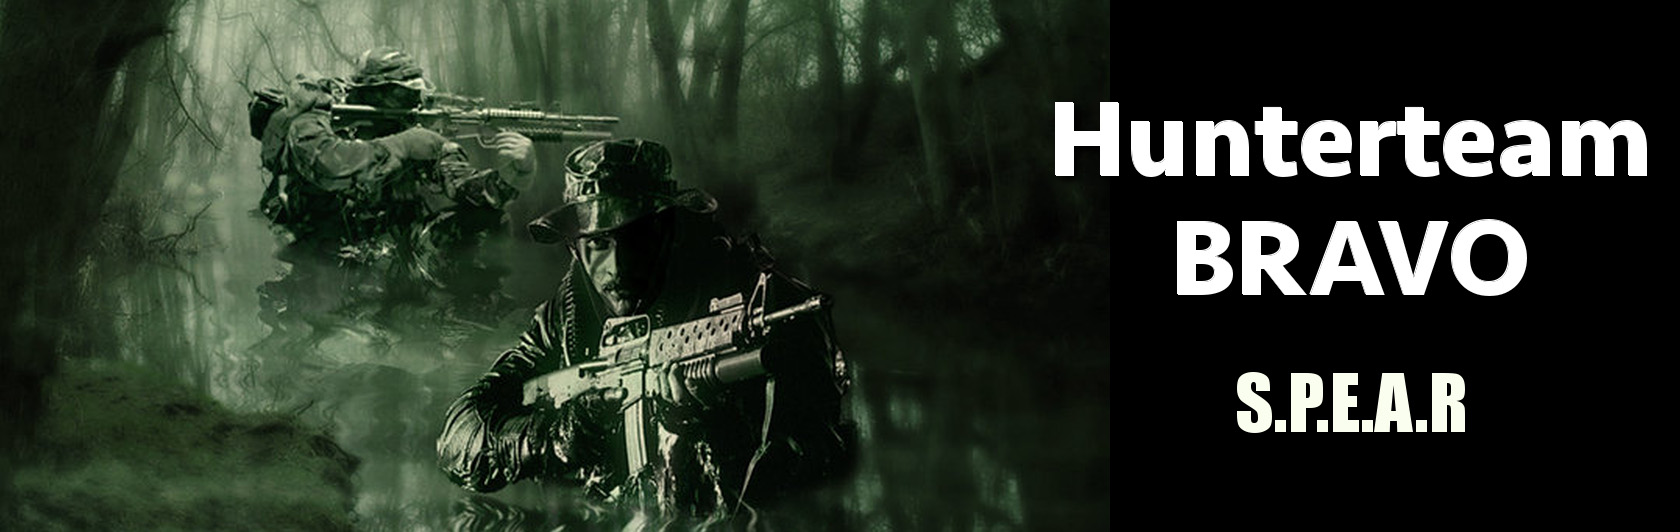 Hunterteam_Bravo_Banner_1.5.jpg